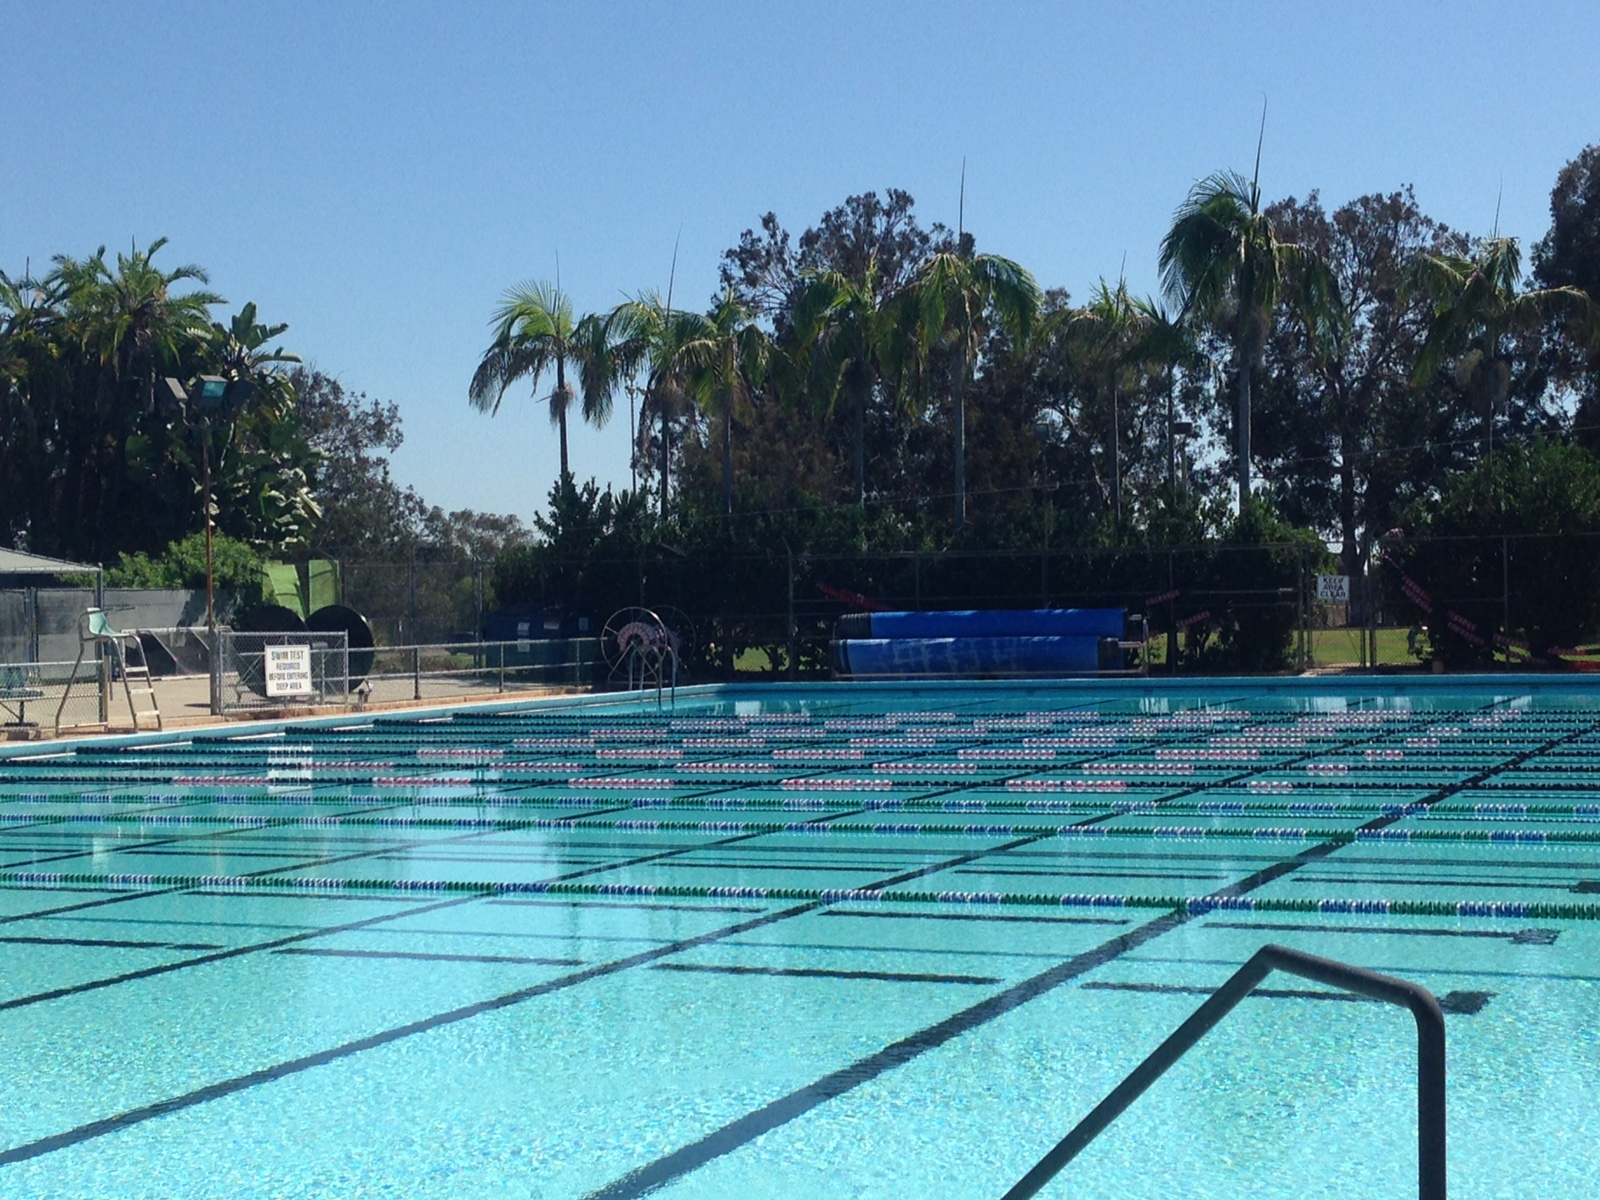 It 39 S Fixed No Running And No Peeing In Bud 39 S Pool San Diego Reader